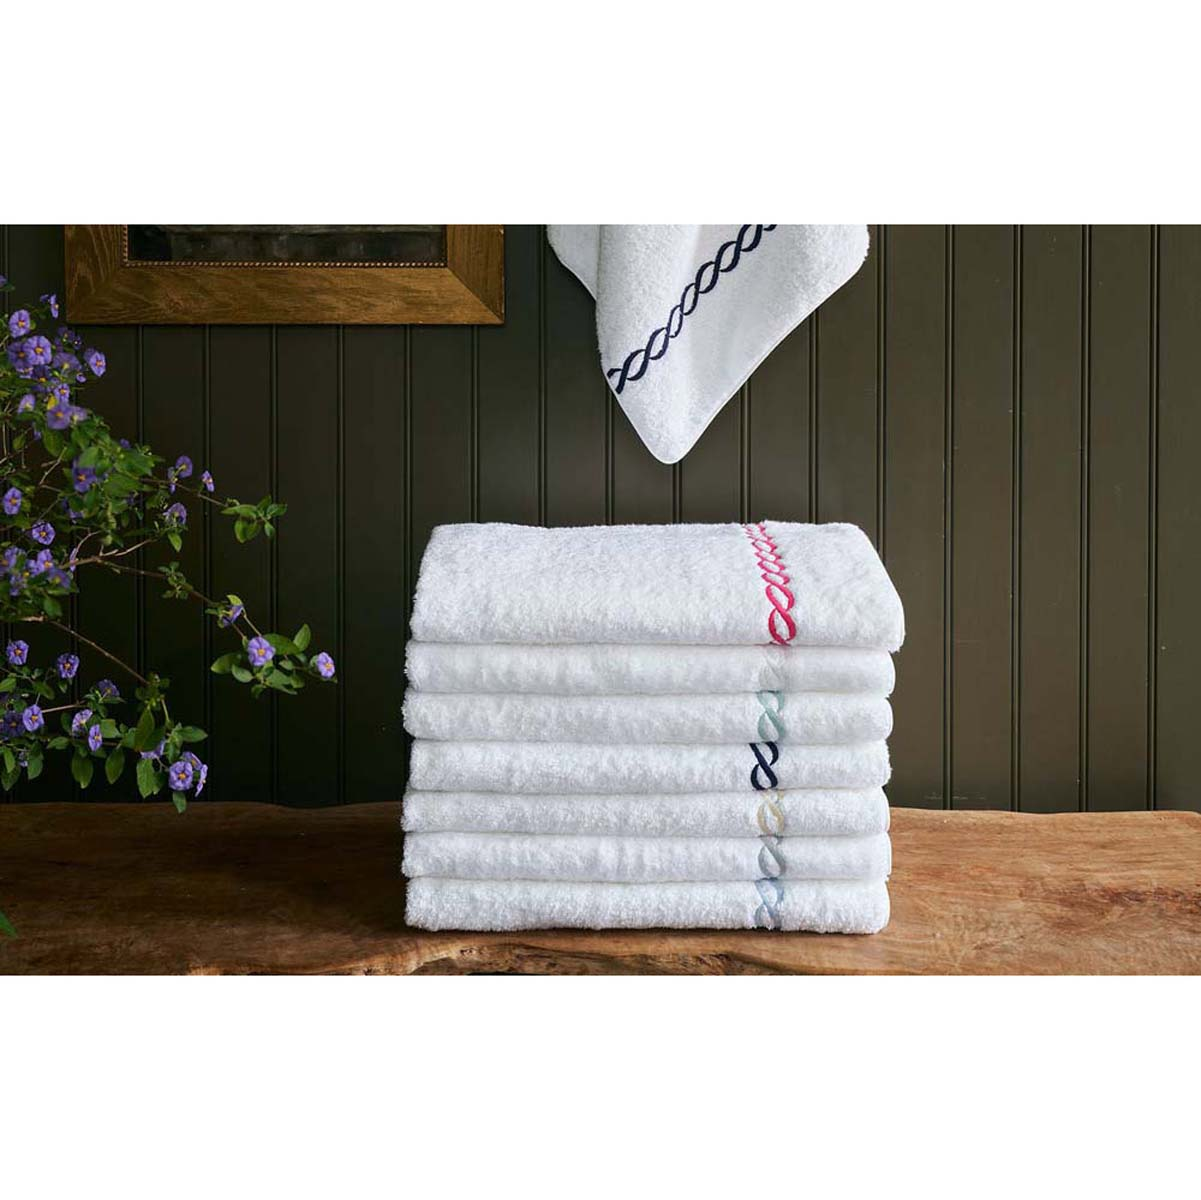 Matouk Classic Chain Luxury Towels